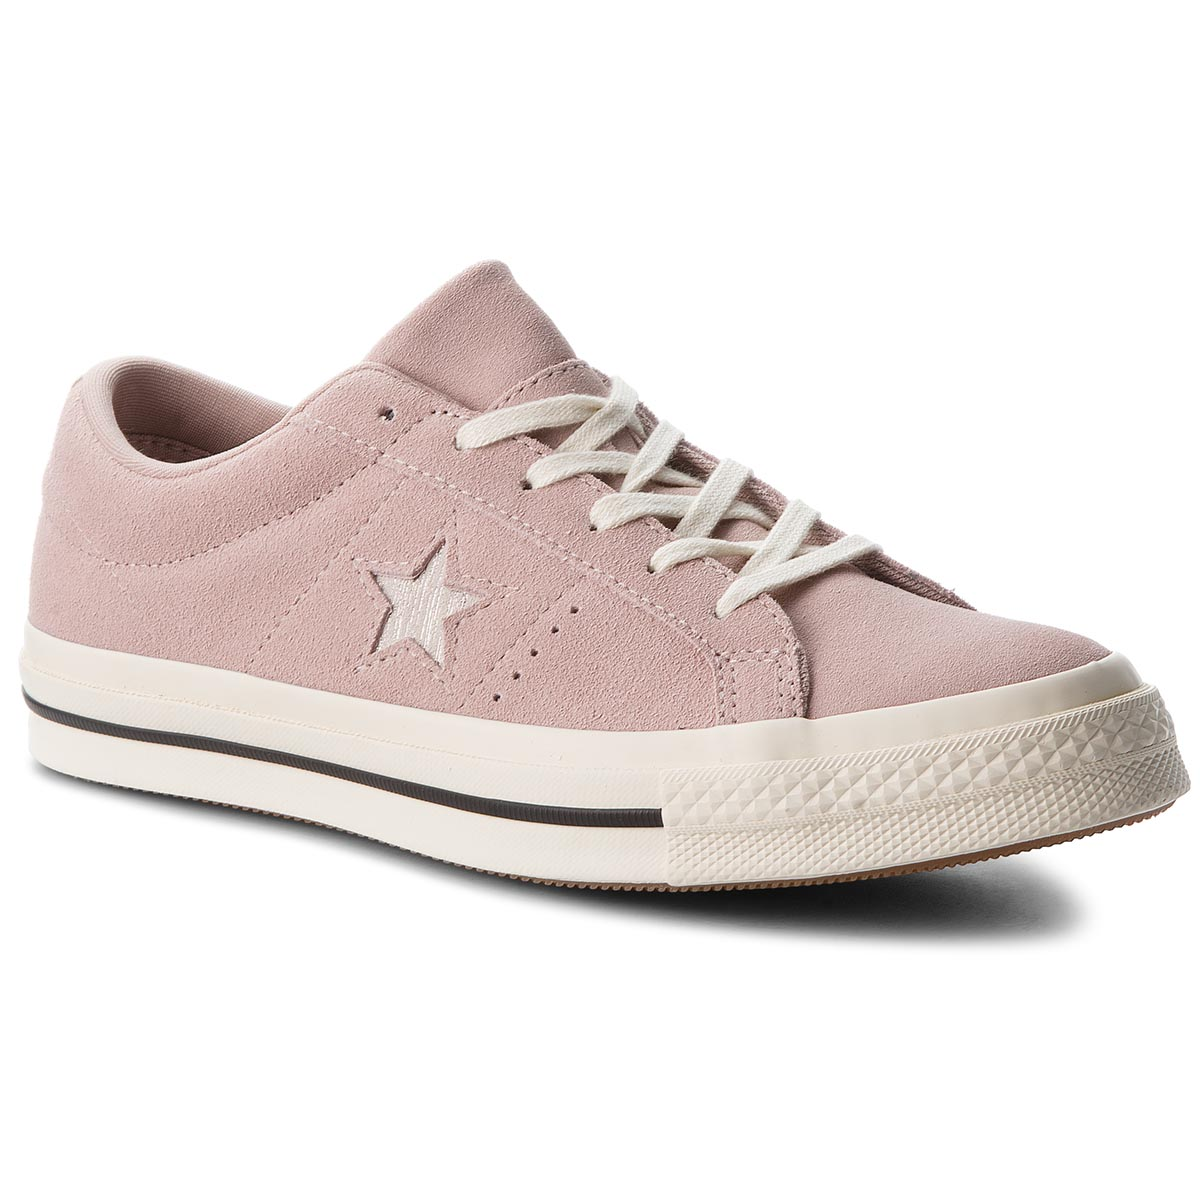 Tenisówki CONVERSE - One Star Ox 161539C Diffused Taupe/Silver/Egret